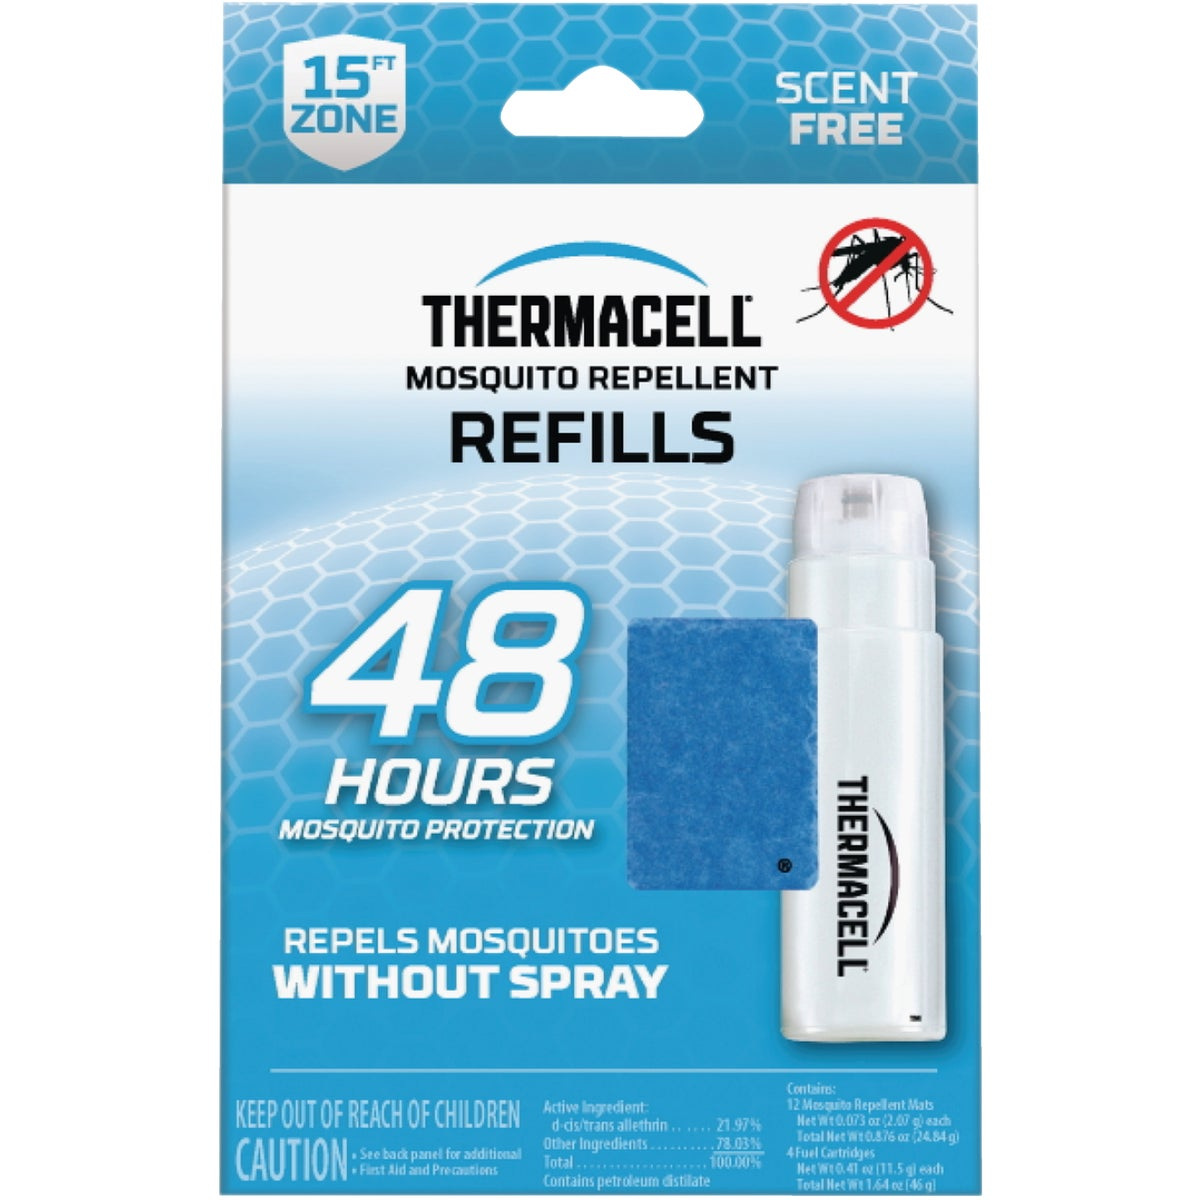 4 PAK THERMACELL REFILL - MR400-12 by Schawbel Corp